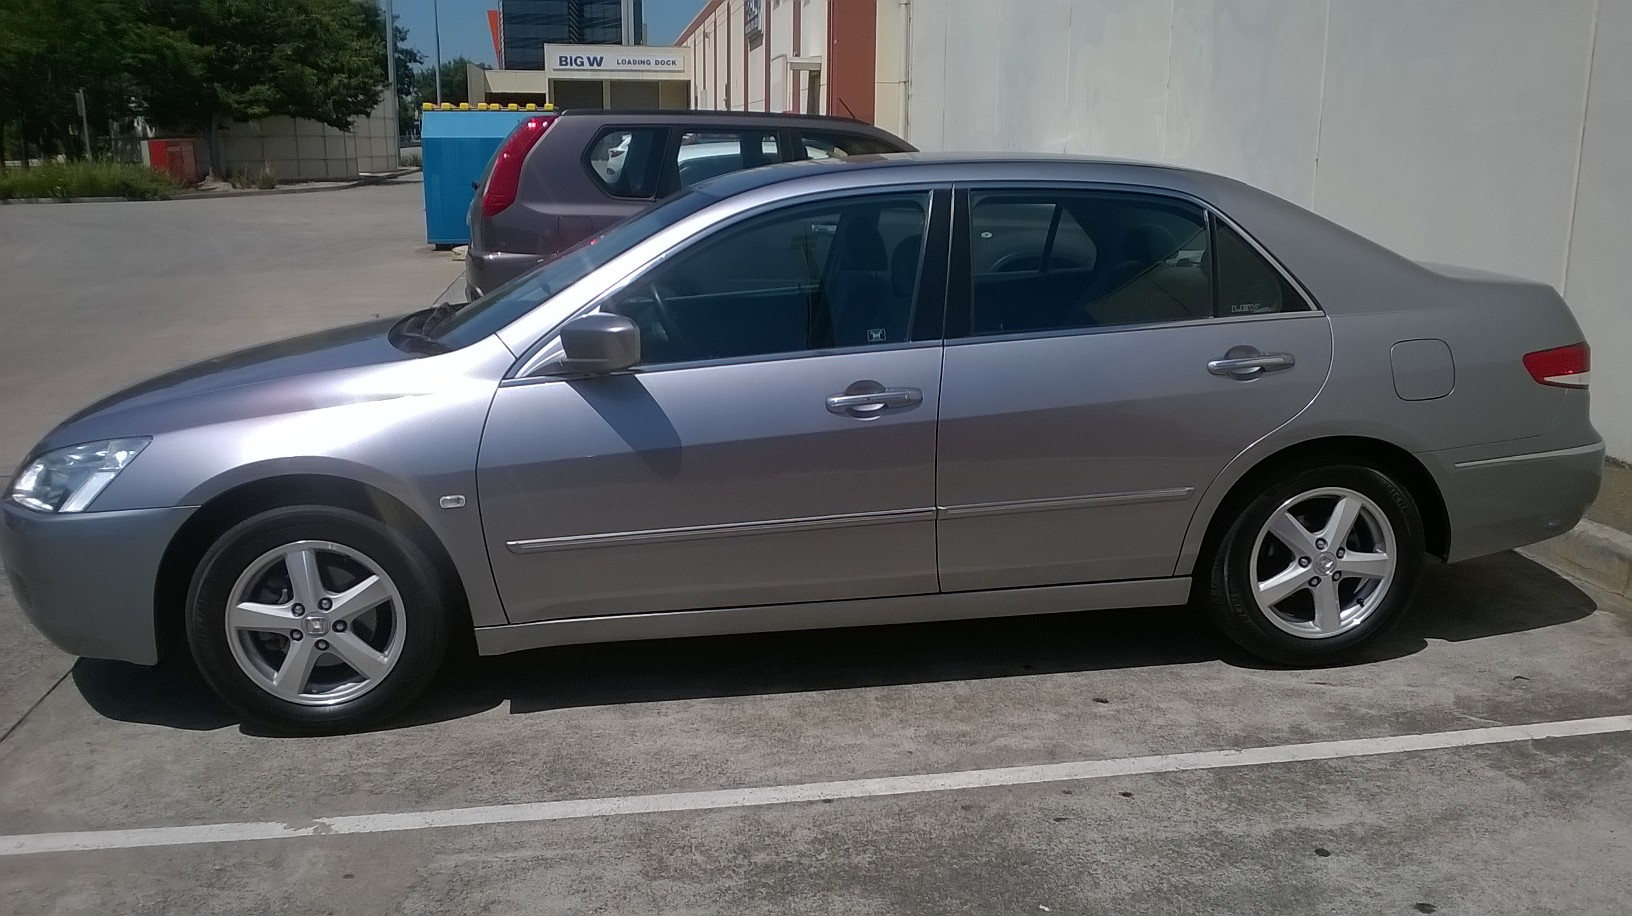 Picture of Sundesh's 2006 Honda Accord